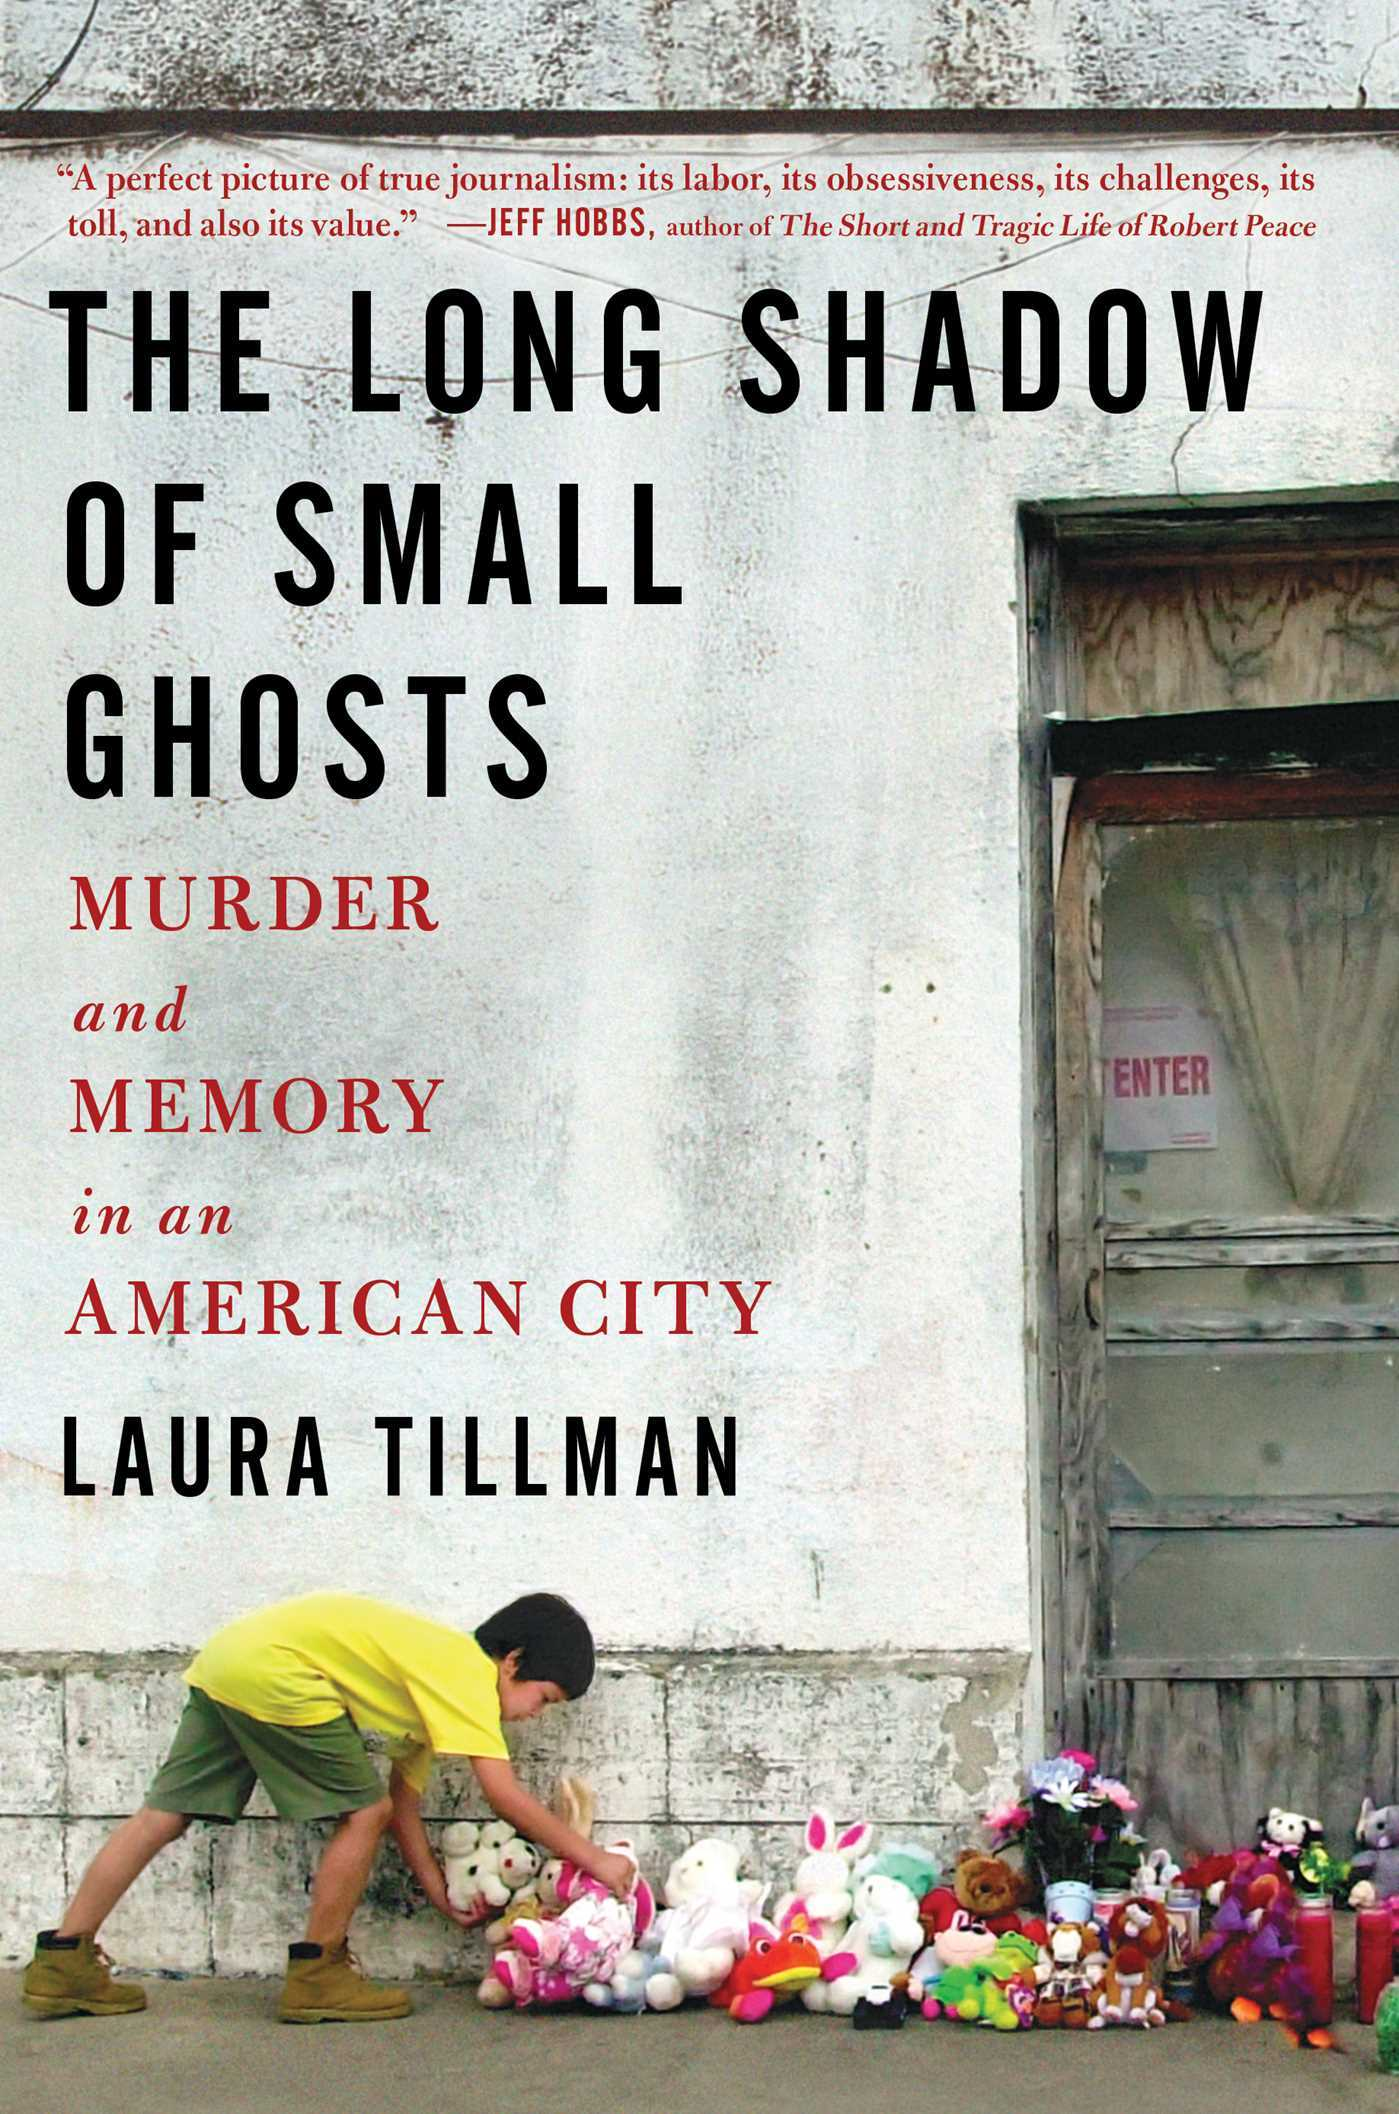 The Long Shadow of Small Ghosts Murder and Memory in an American City